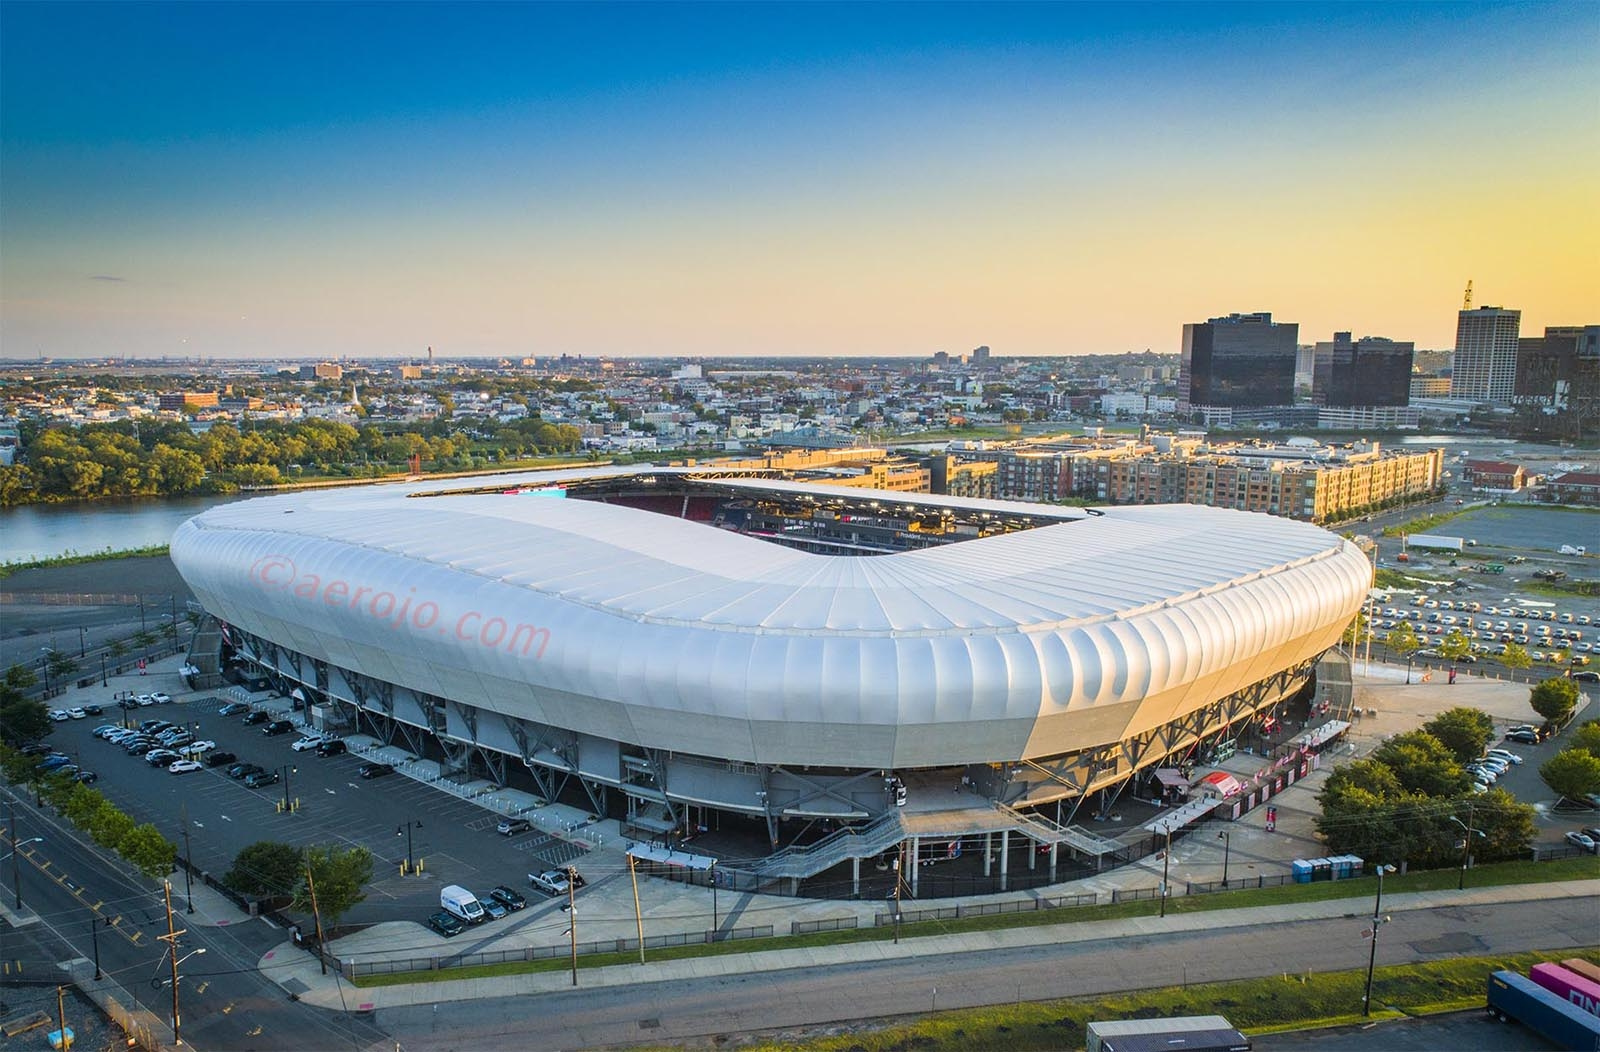 Drone Photograph taken at sunset of Red Bull Arena Harrison New Jersey